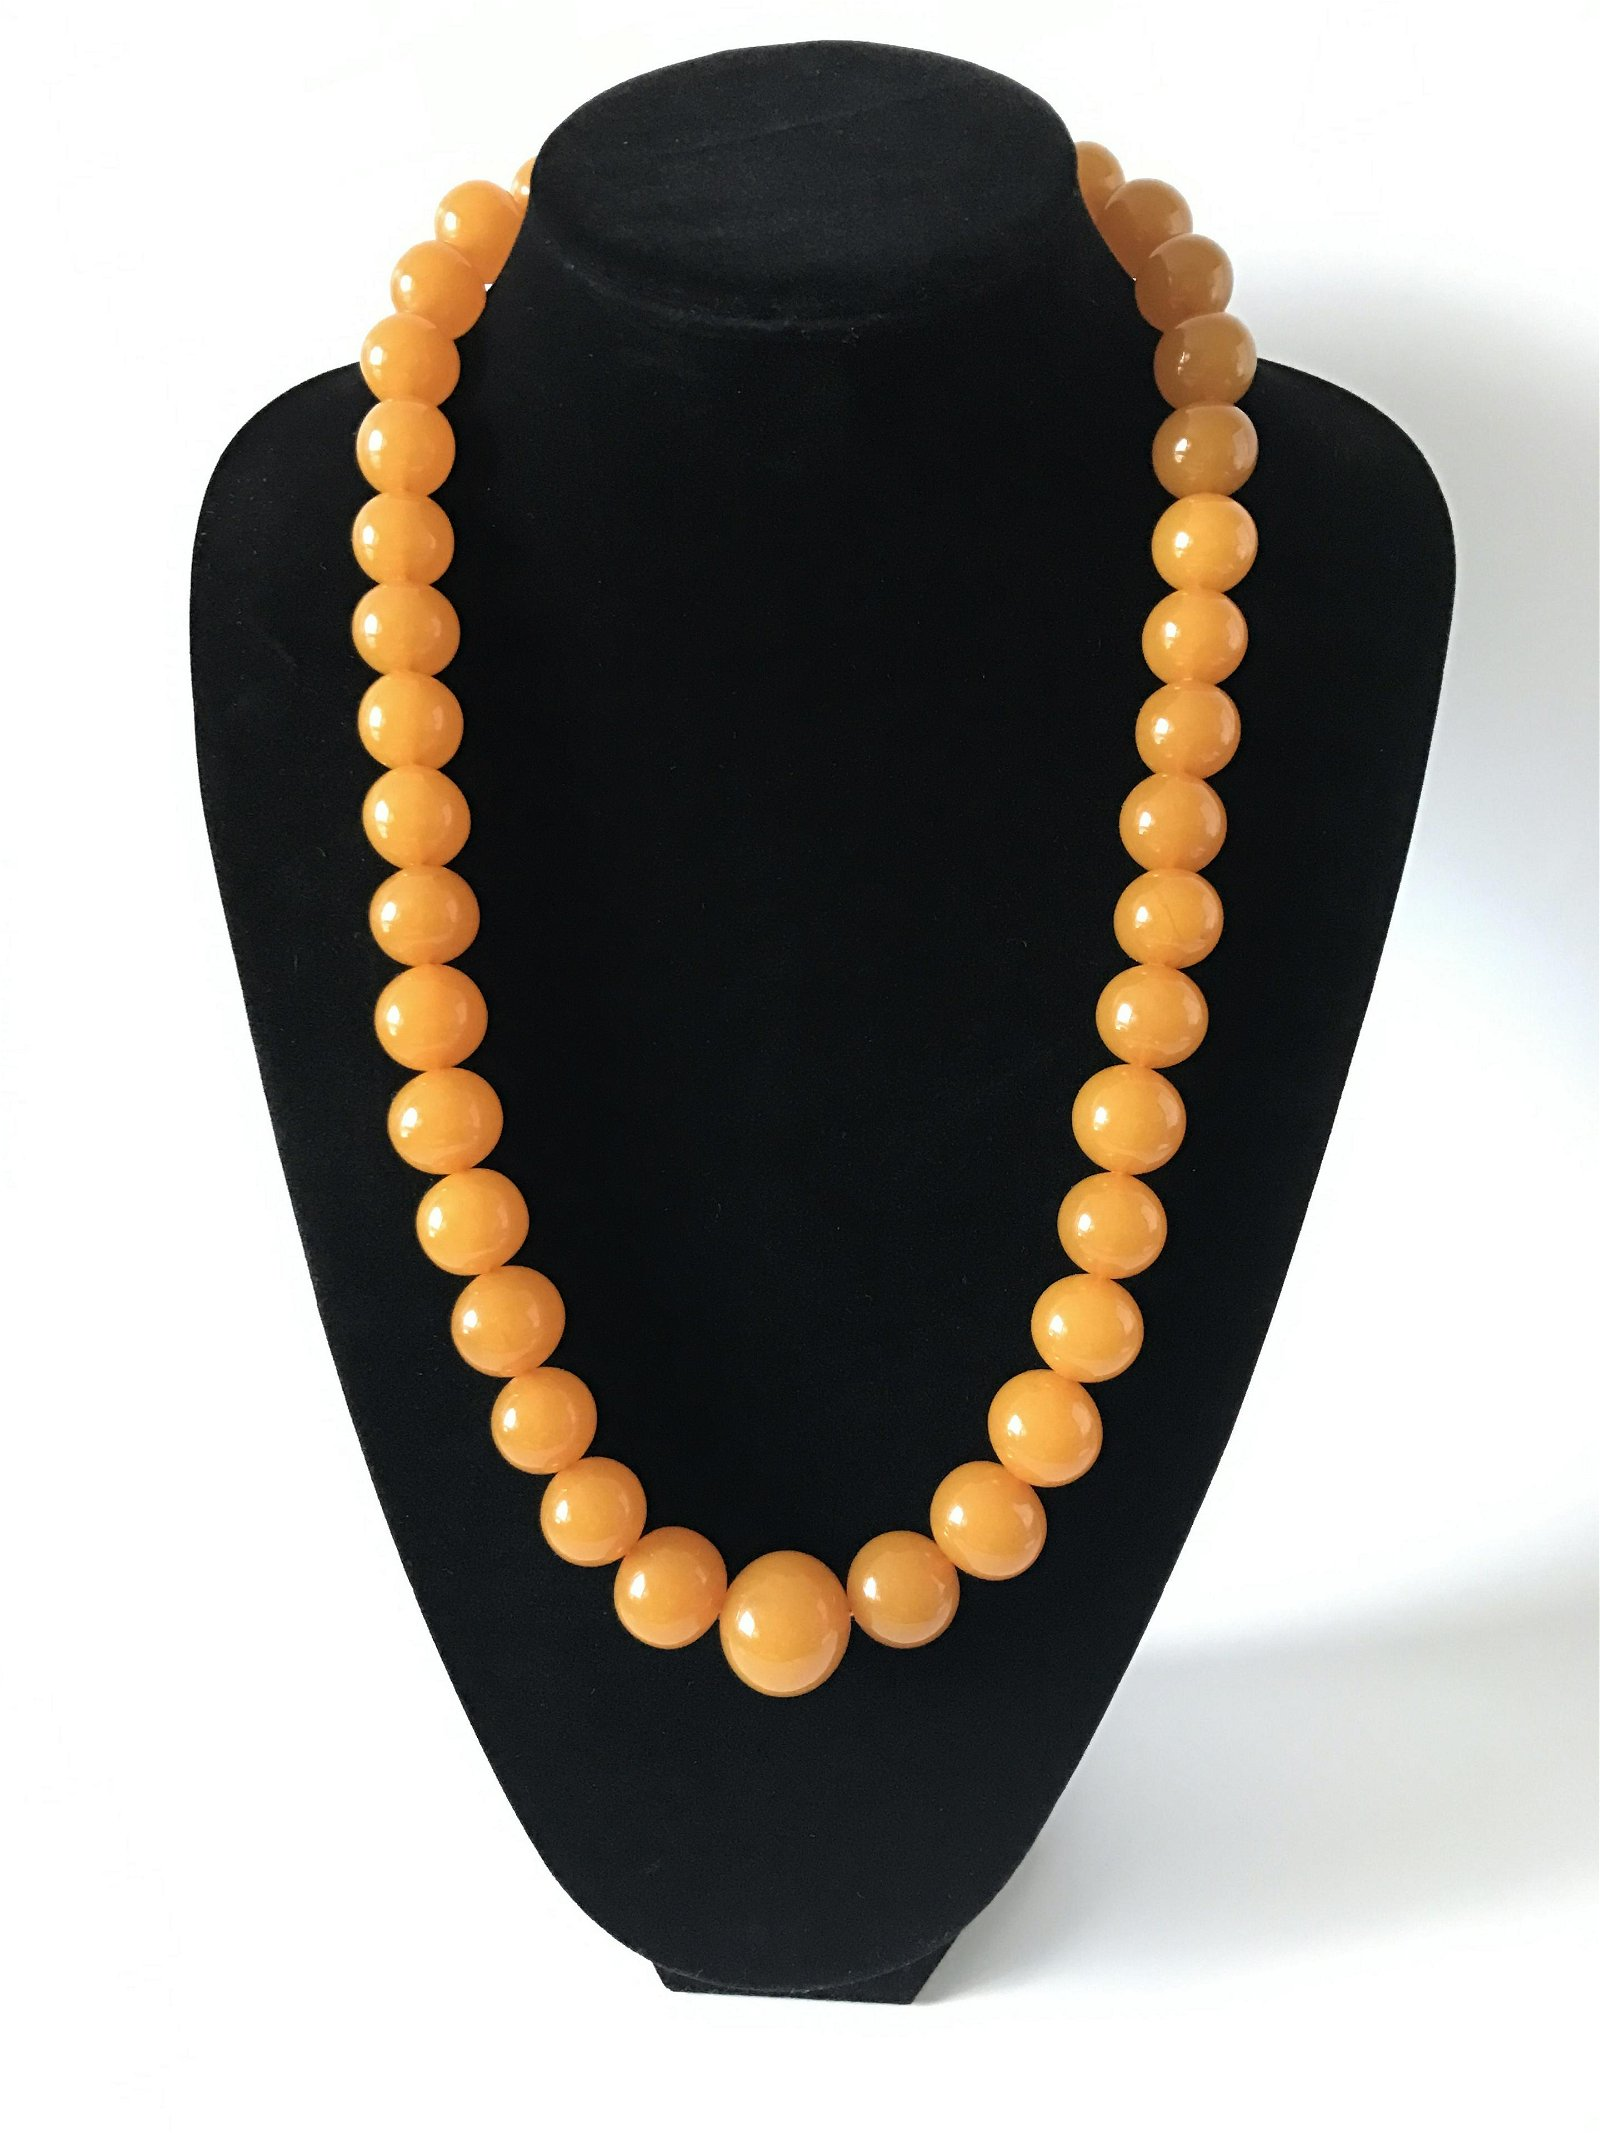 Old Baltic Amber Necklace Toffee Colour Round Beads